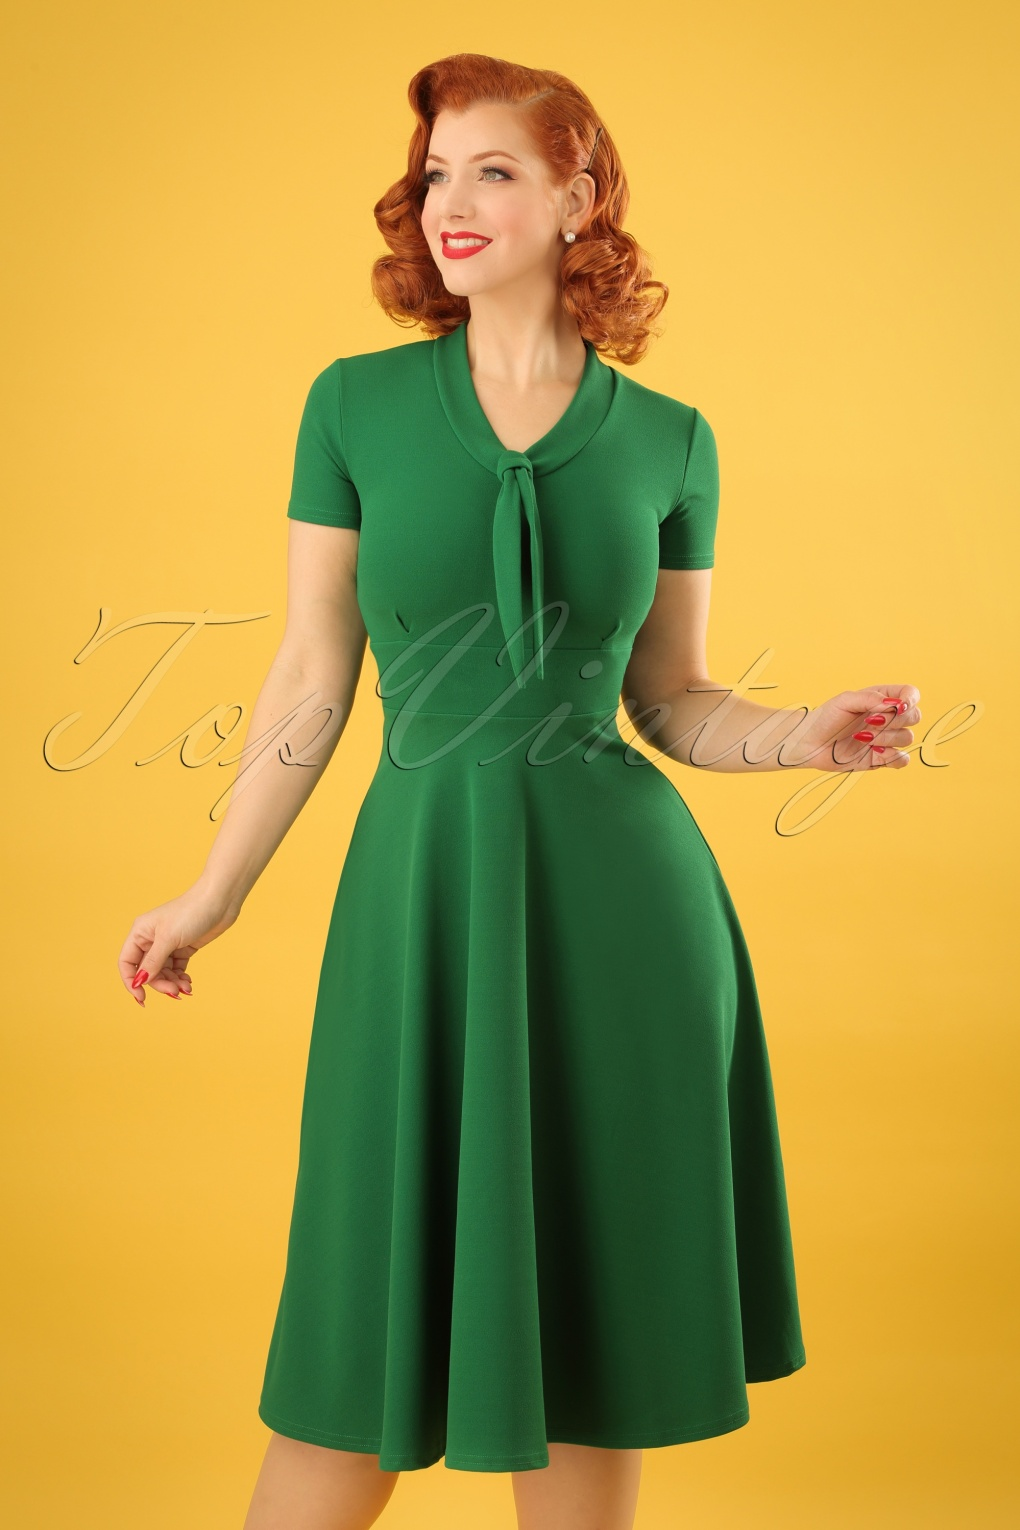 Pin Up Dresses | Pin Up Clothing 50s Lillie Swing Dress in Emerald Green £48.18 AT vintagedancer.com